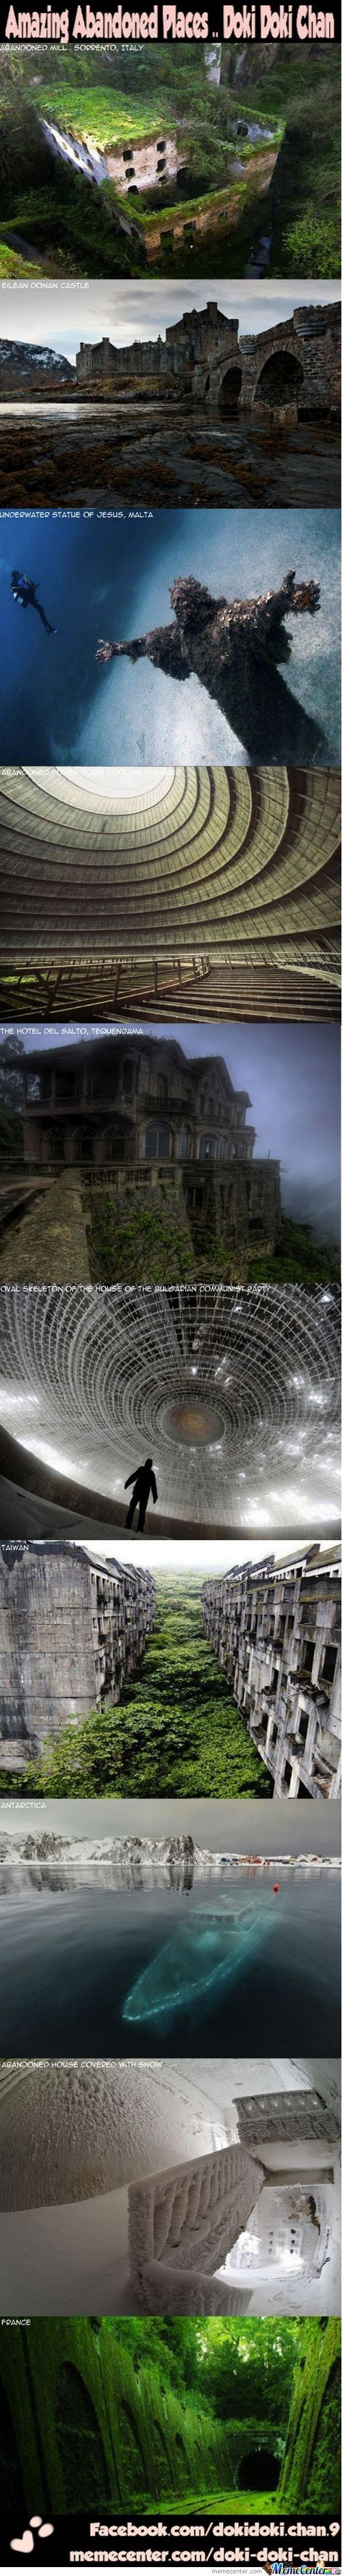 Amazing Abandoned Places